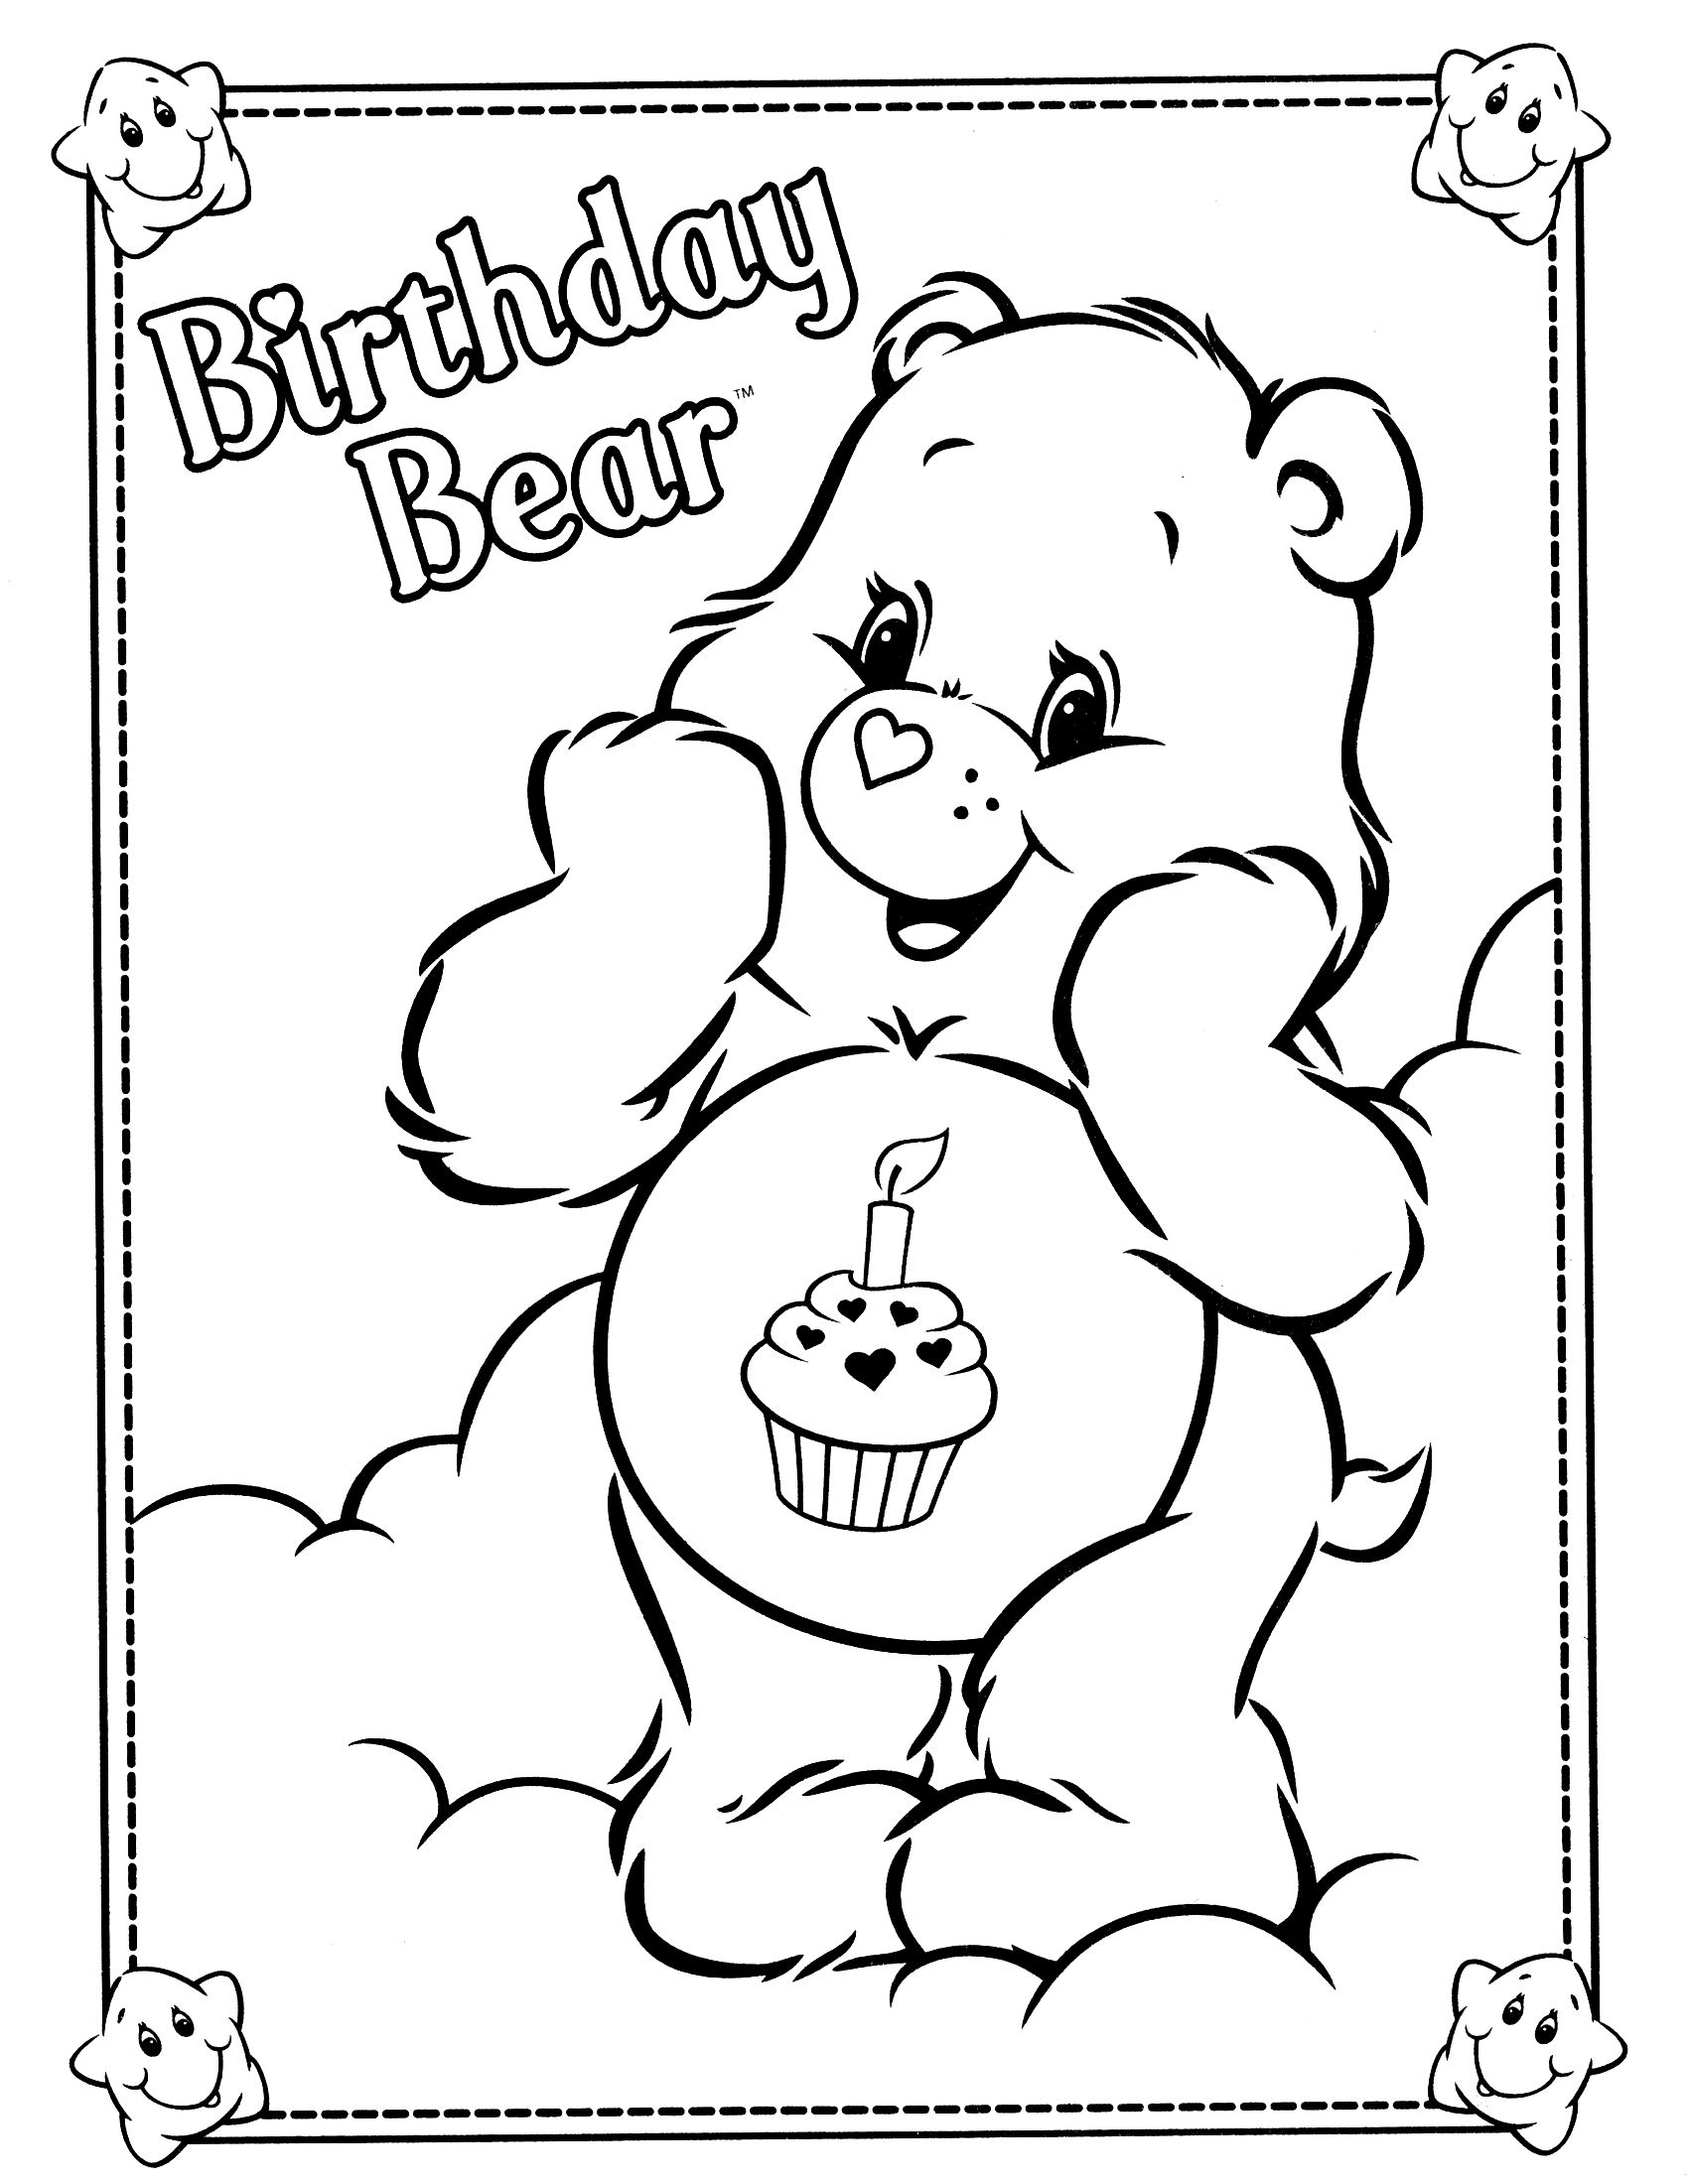 care bears coloring page Pinteres